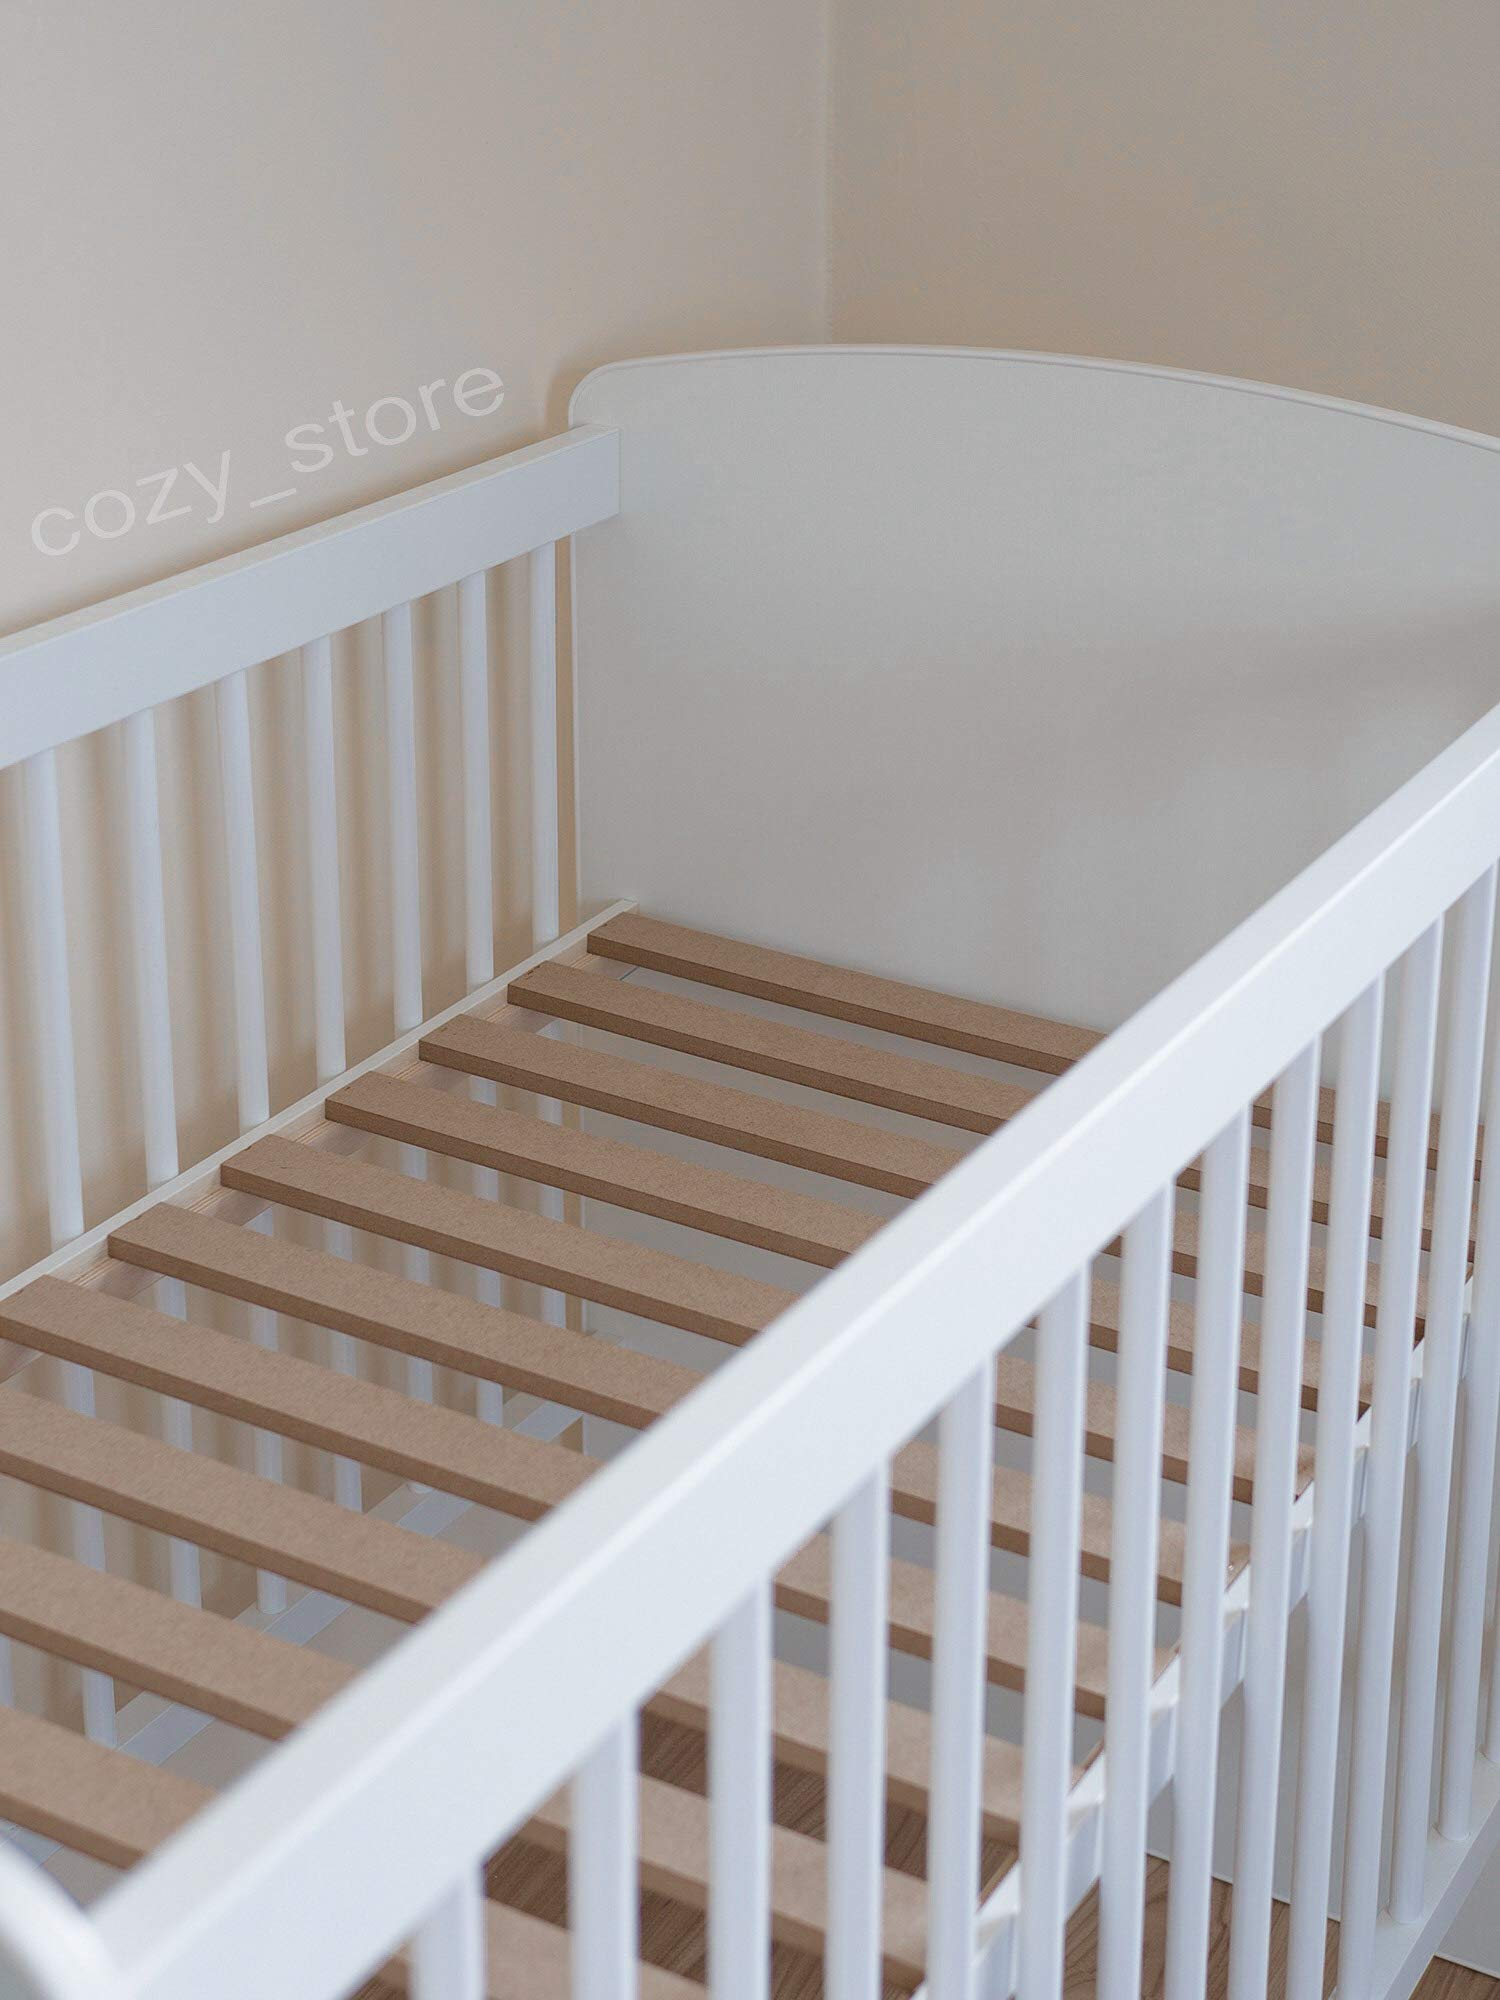 SOCOZY®   White Solid Pine Wood Baby Cot Bed I Free Healthy Coconut&BUCKWHEAT Mattress I Bed for Baby   3 Mattress Positions   ECO Paint   Minimalistic   120x60 SOCOZY ✔ HEALTH your growing child is the most important for us - The bed is made of ecological board and pine wood and the cot is covered with non-toxic lacquers ✔ ENJOY the view of the child playing in the cot and have a moment to yourself - as mom you deserve it more than anyone else ✔ GIVE YOUR CHILD a peaceful and helathy sleep - Coconut mat provides a flat, hard but also elastic support for the body while sleeping, perfect air circulation and humidity control. The mat is ecological. 3